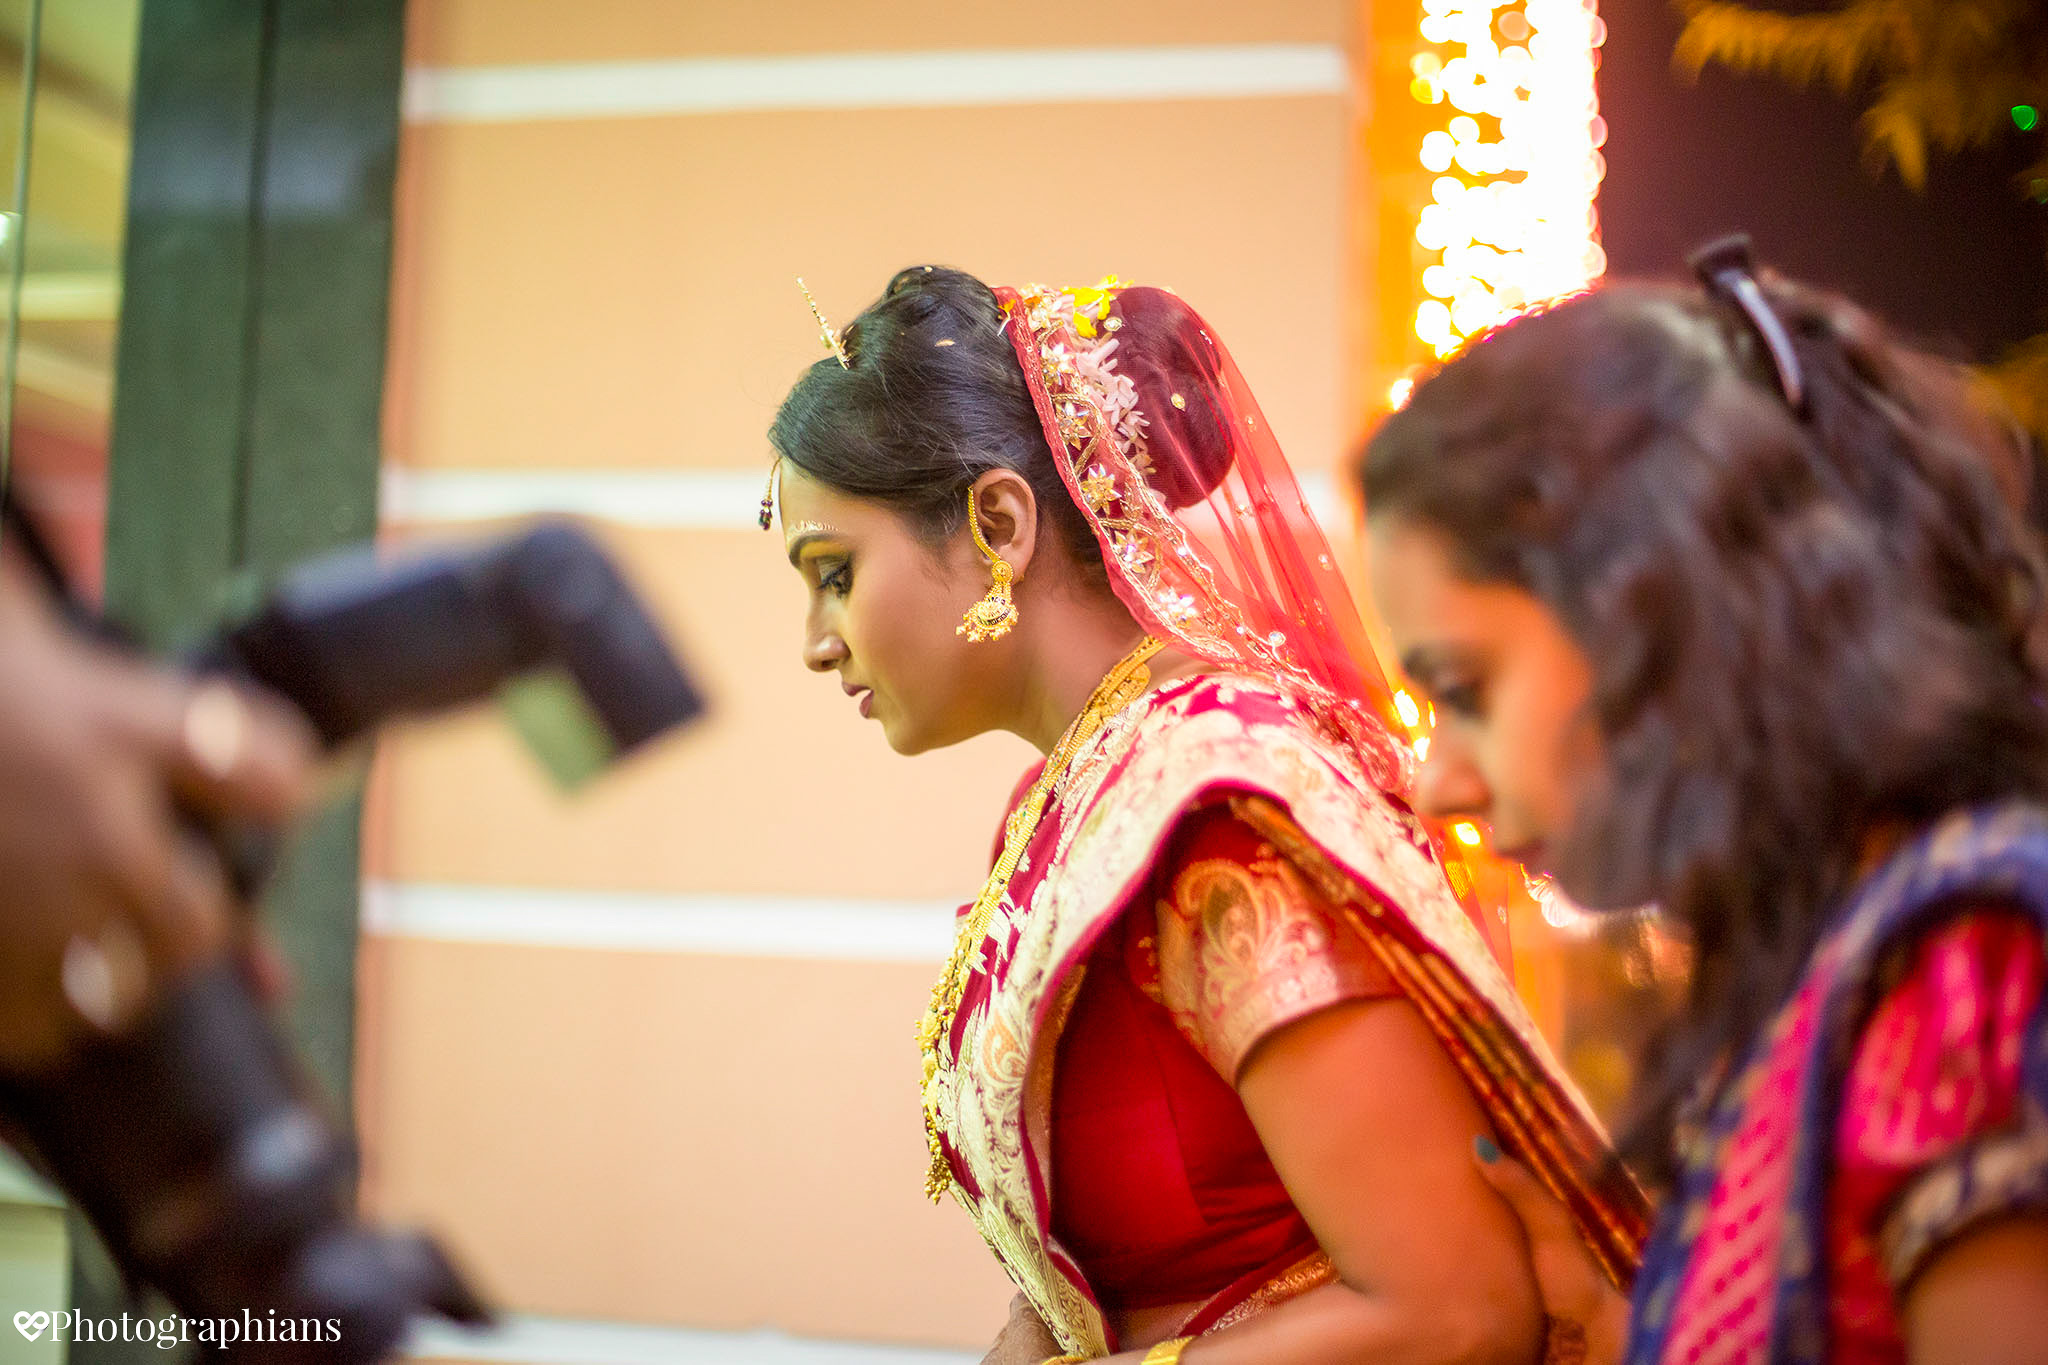 Photographians_Indian_Wedding_Durgapur_028